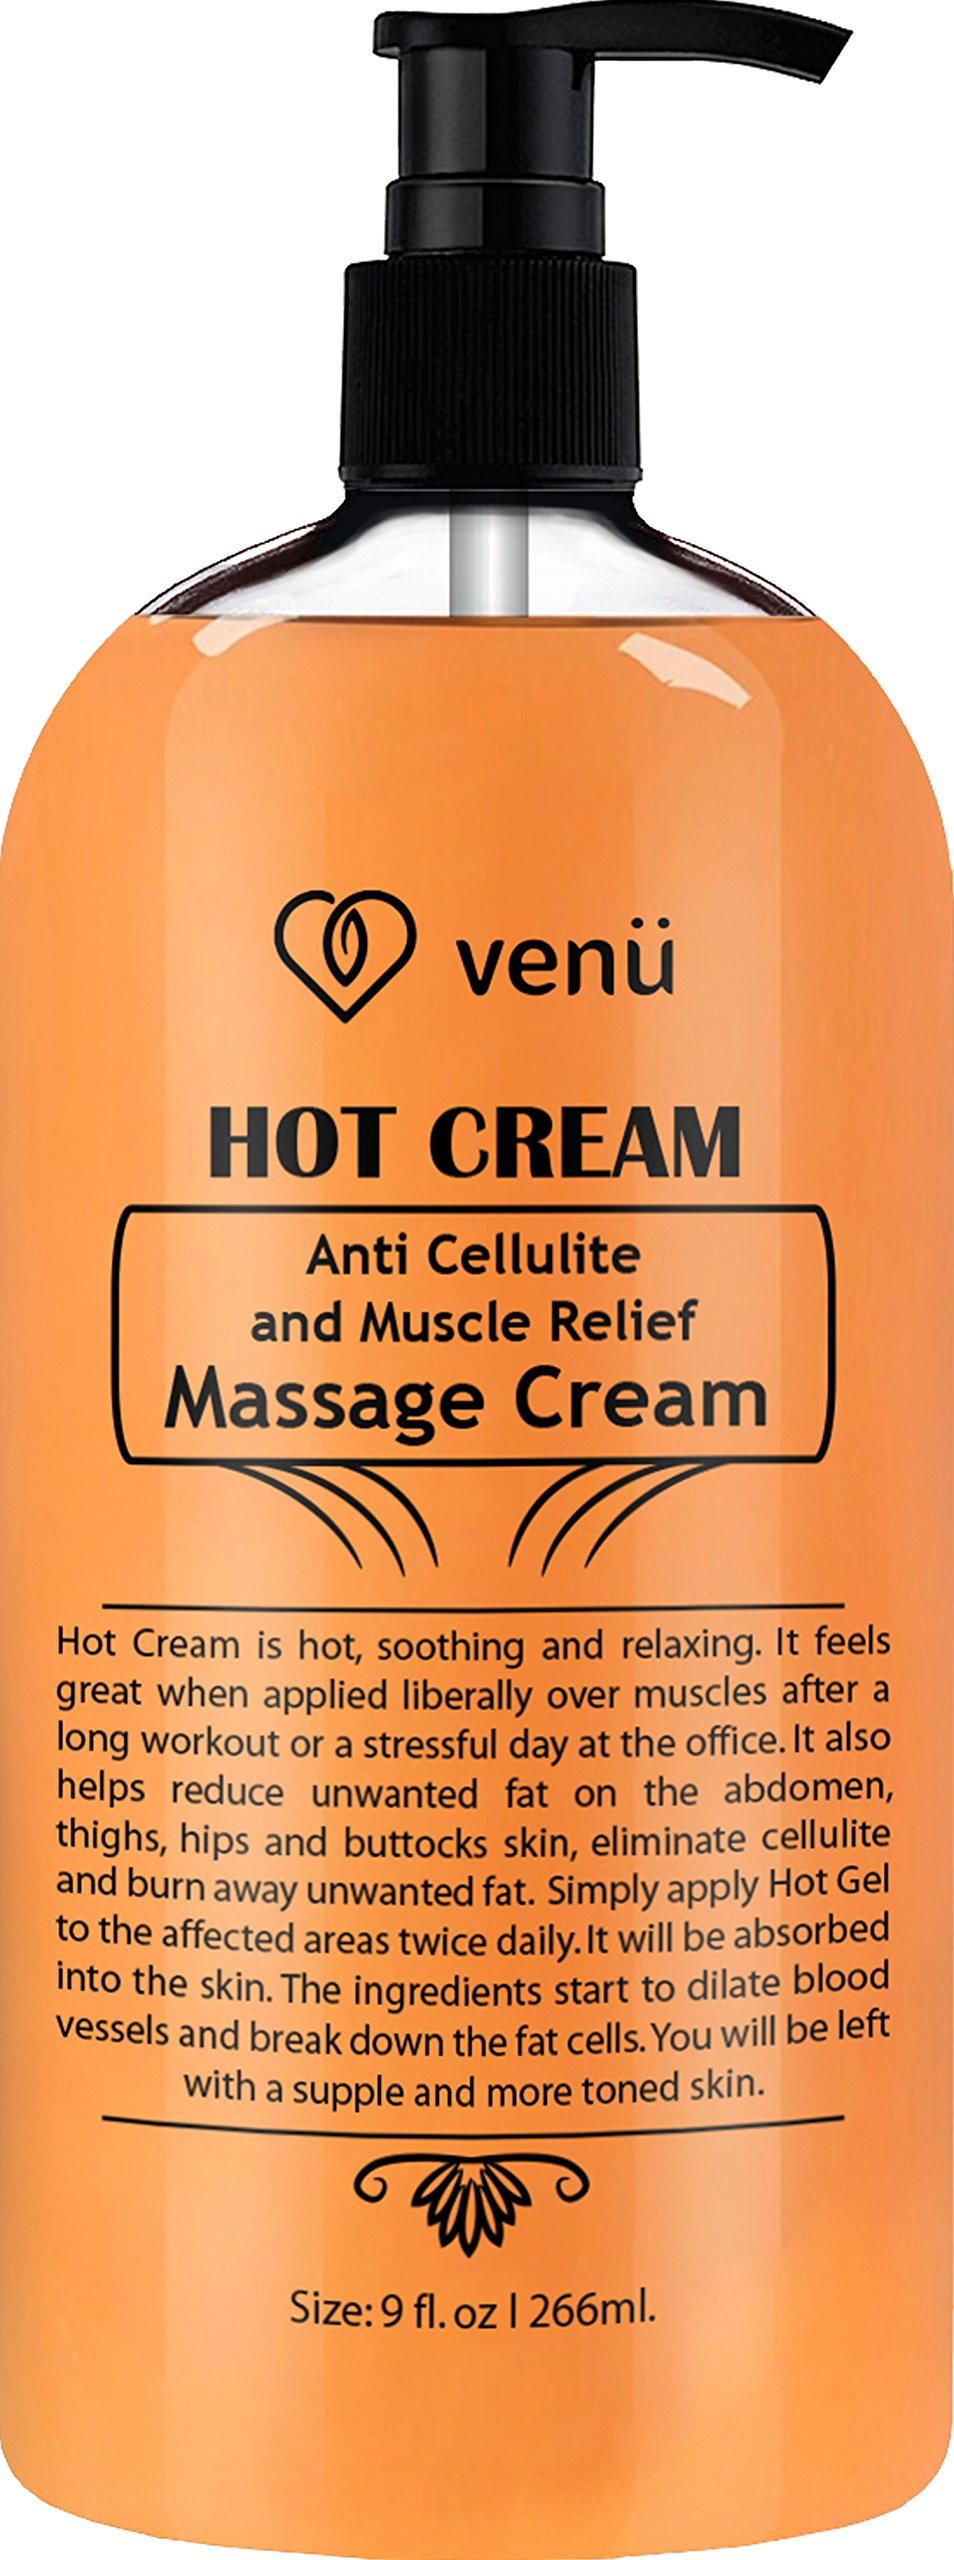 Hot Cream Anti Cellulite and Muscle Relief Cream, Muscle Rub and Muscle Massager Gel, Muscle Relaxant & Pain Relief Cream, Firms Skin, Fat to Flat, Treatment - Tightens Skin, Soothes, Relaxes, 9OZ